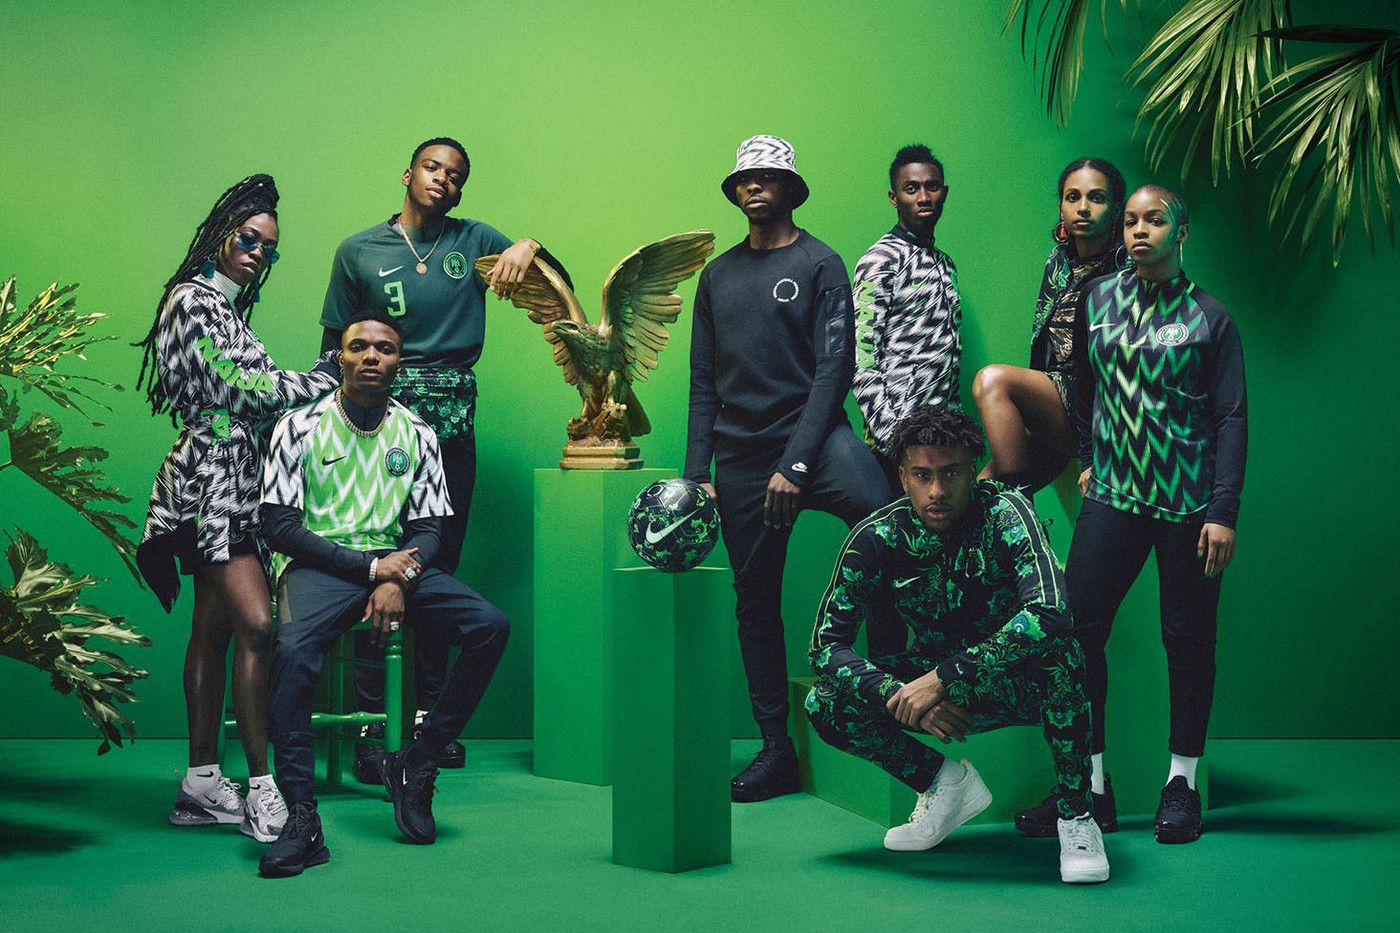 Nigeria S 2018 World Cup Kit Shortlisted For Major Design Of The Year Award In 2020 World Cup Kits Football Kits World Cup Jerseys